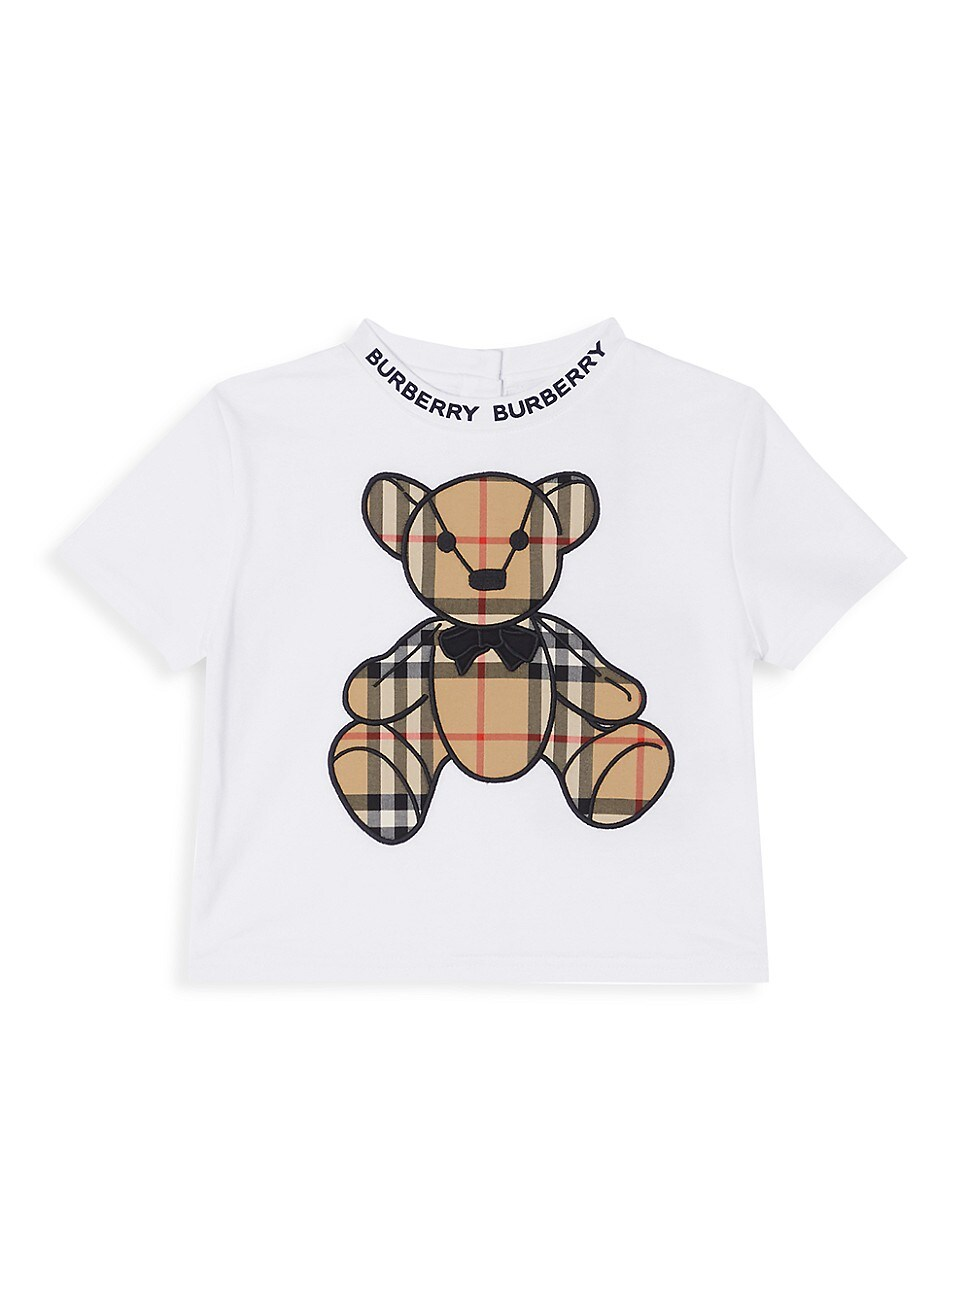 Burberry BABY'S & LITTLE KID'S DANNY VINTAGE CHECK COTTON T-SHIRT